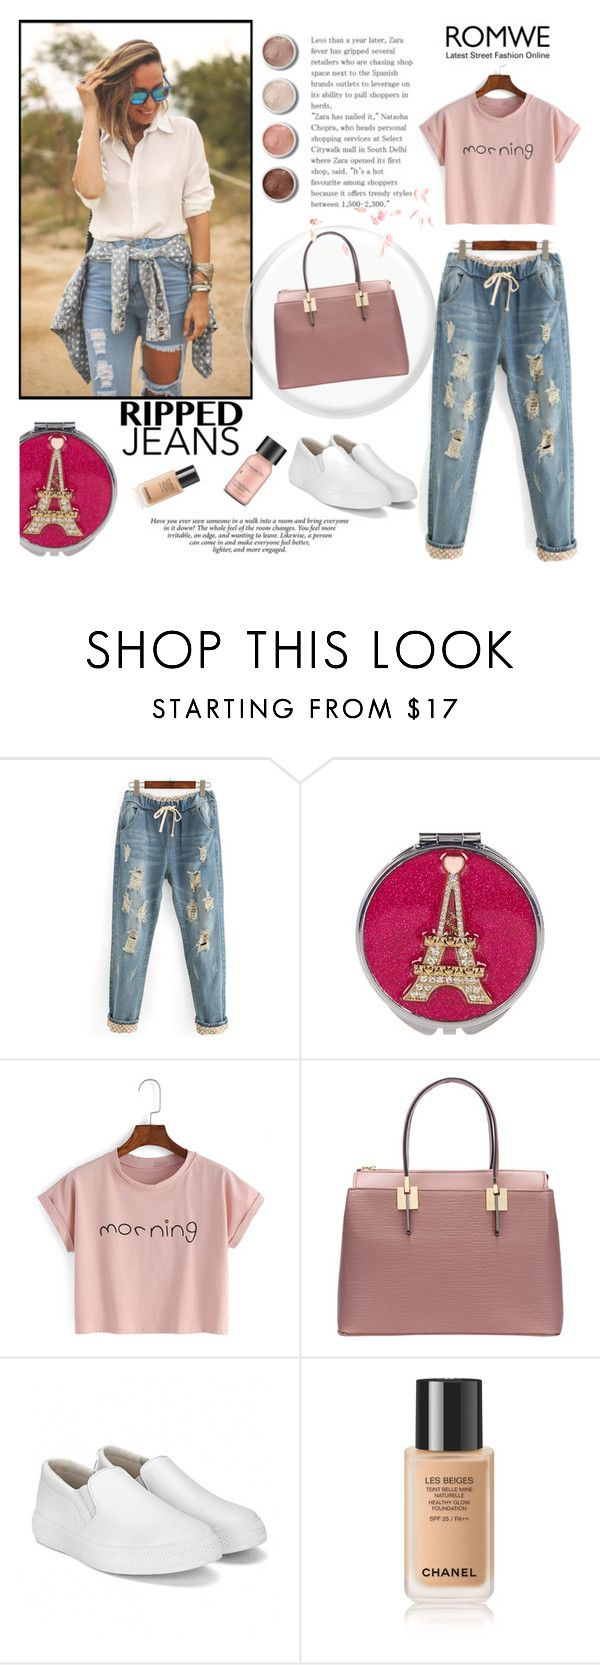 """""""Romwe"""" by beenabloss ❤ liked on Polyvore featuring Betsey Johnson, WithChic, Perricone MD and Terre Mère"""